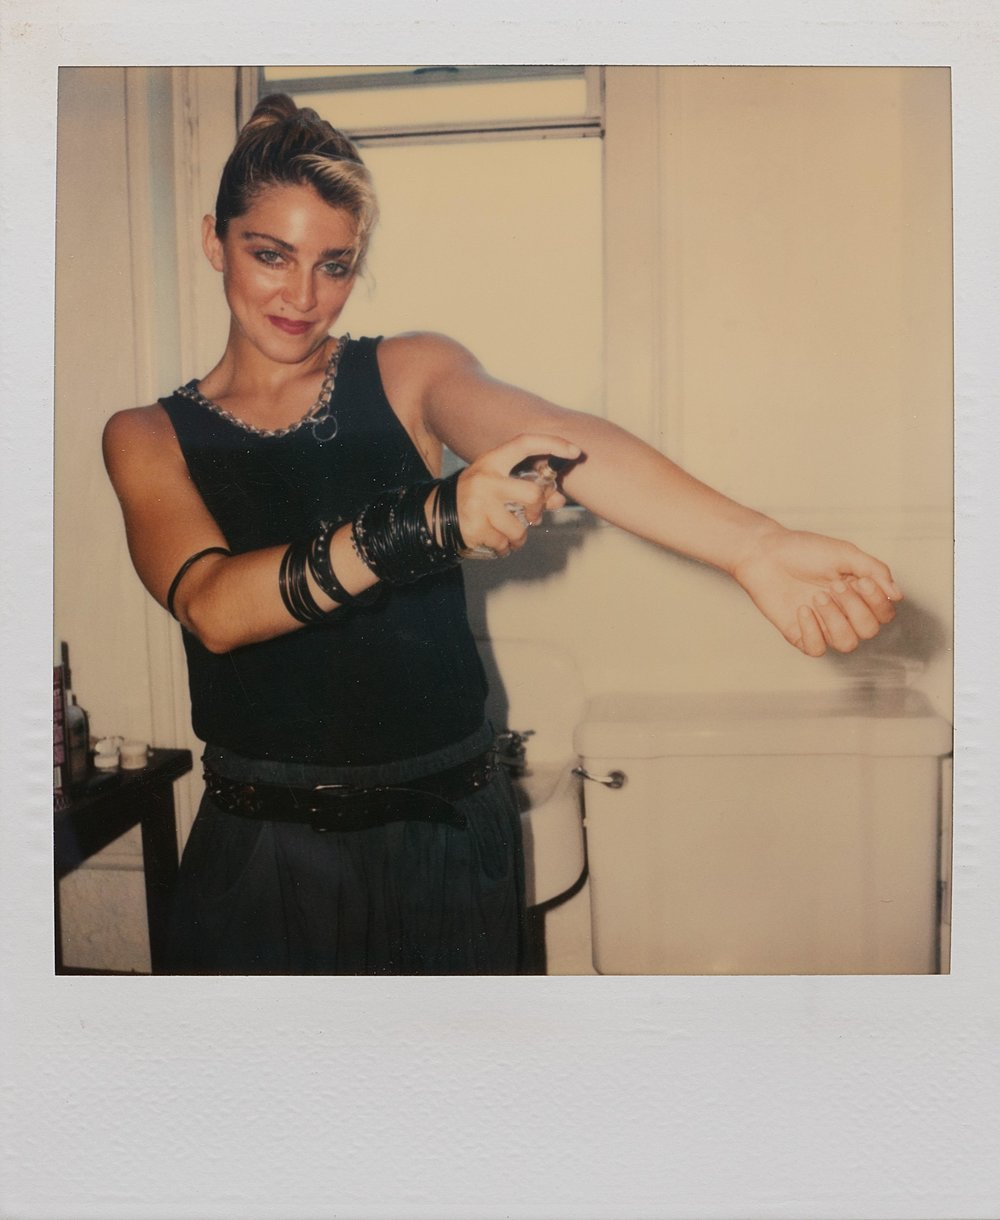 66-long-lost-casting-polaroids-of-madonna-show-a-mega-star-on-the-verge-body-image-1471356595.jpg